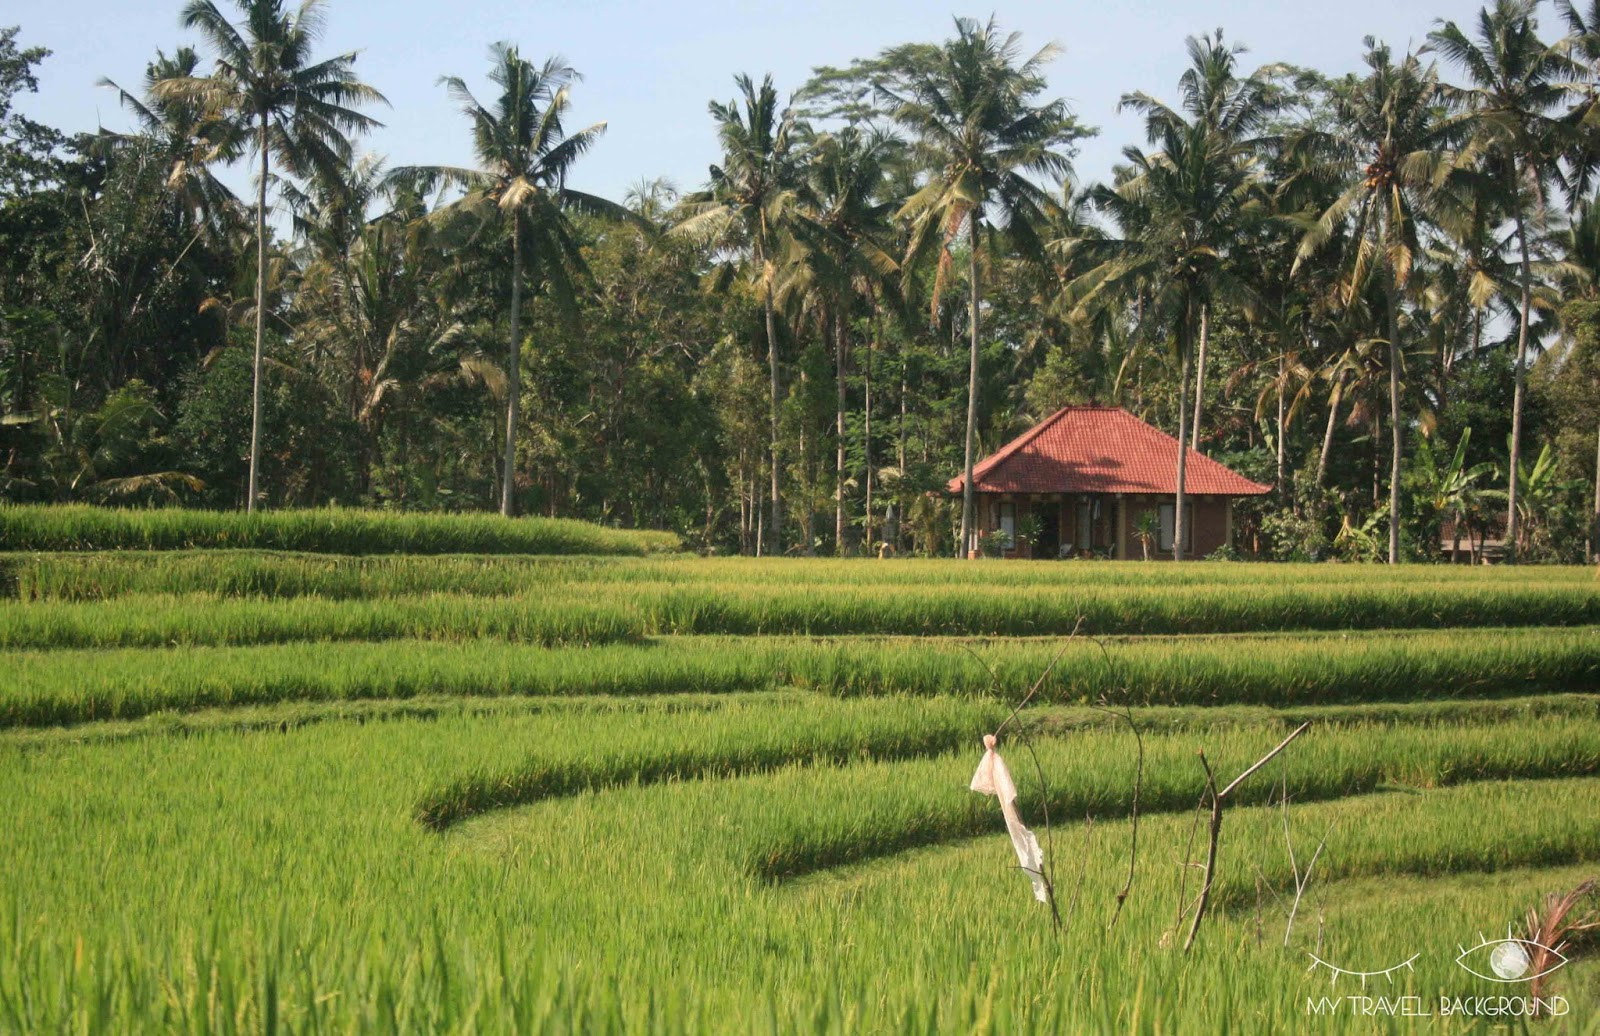 My Travel Background : 10 choses à faire à Bali - Découvrir les rizières